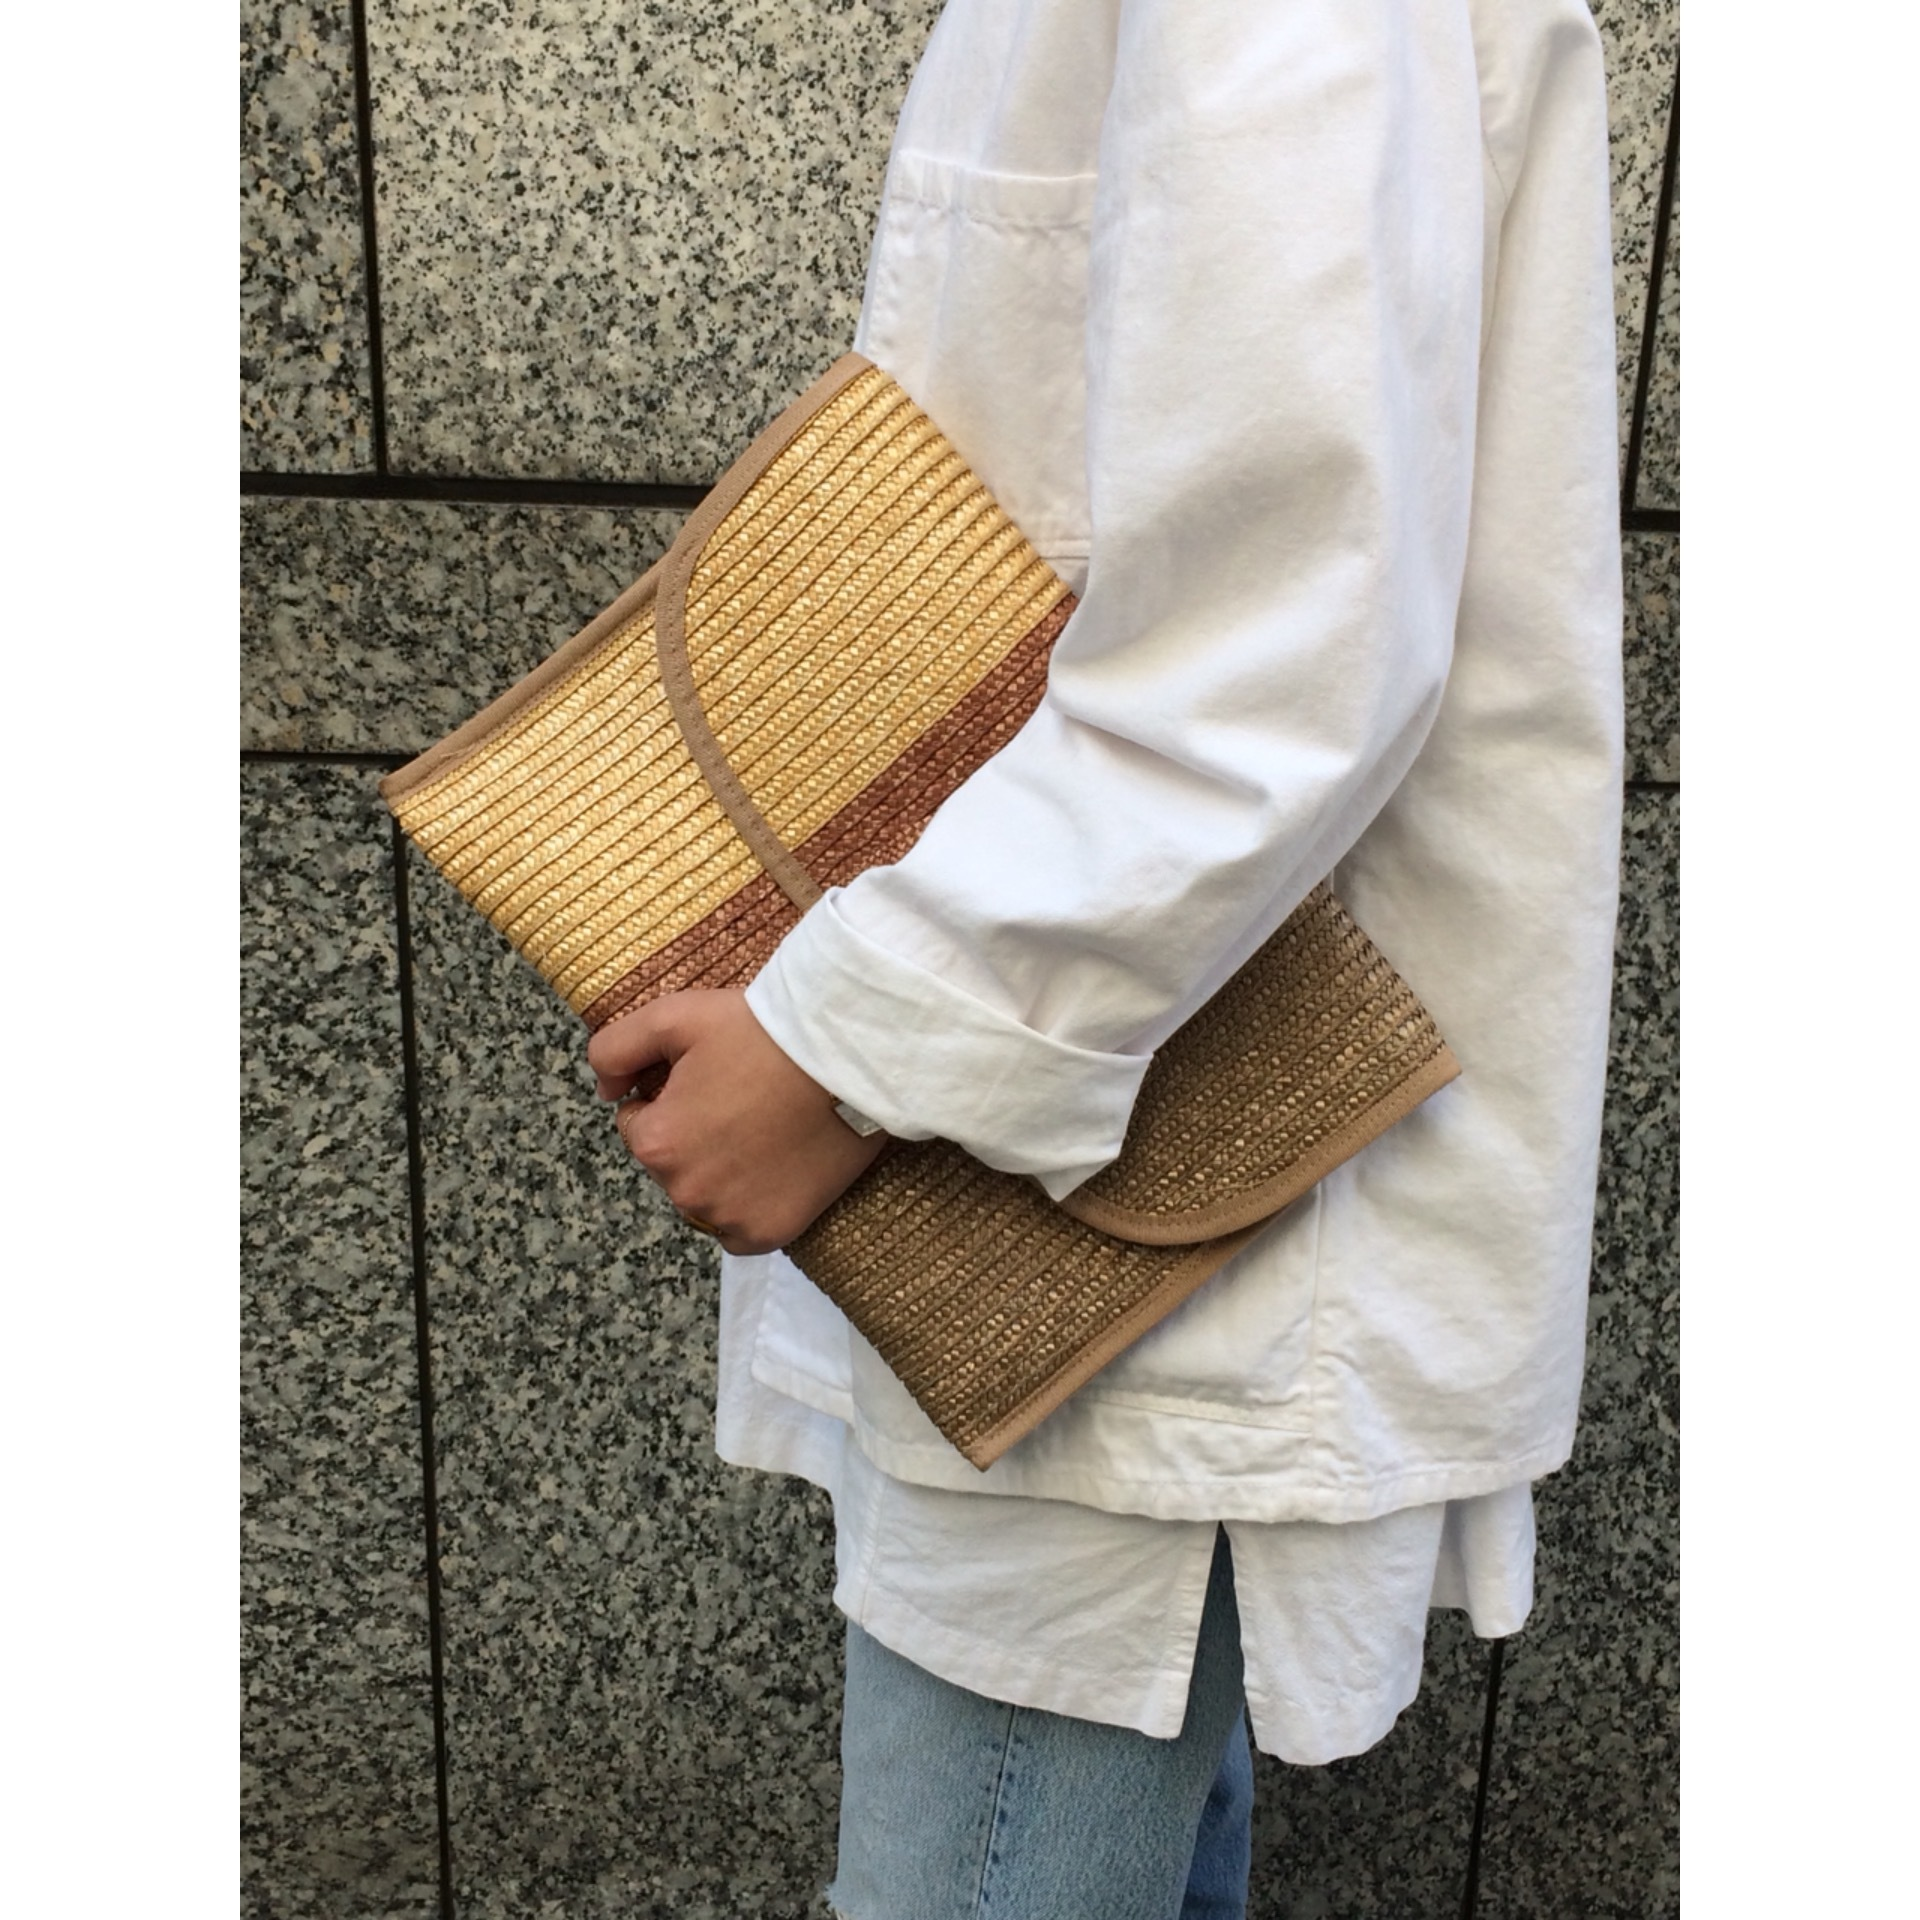 Vintage straw clutch bag